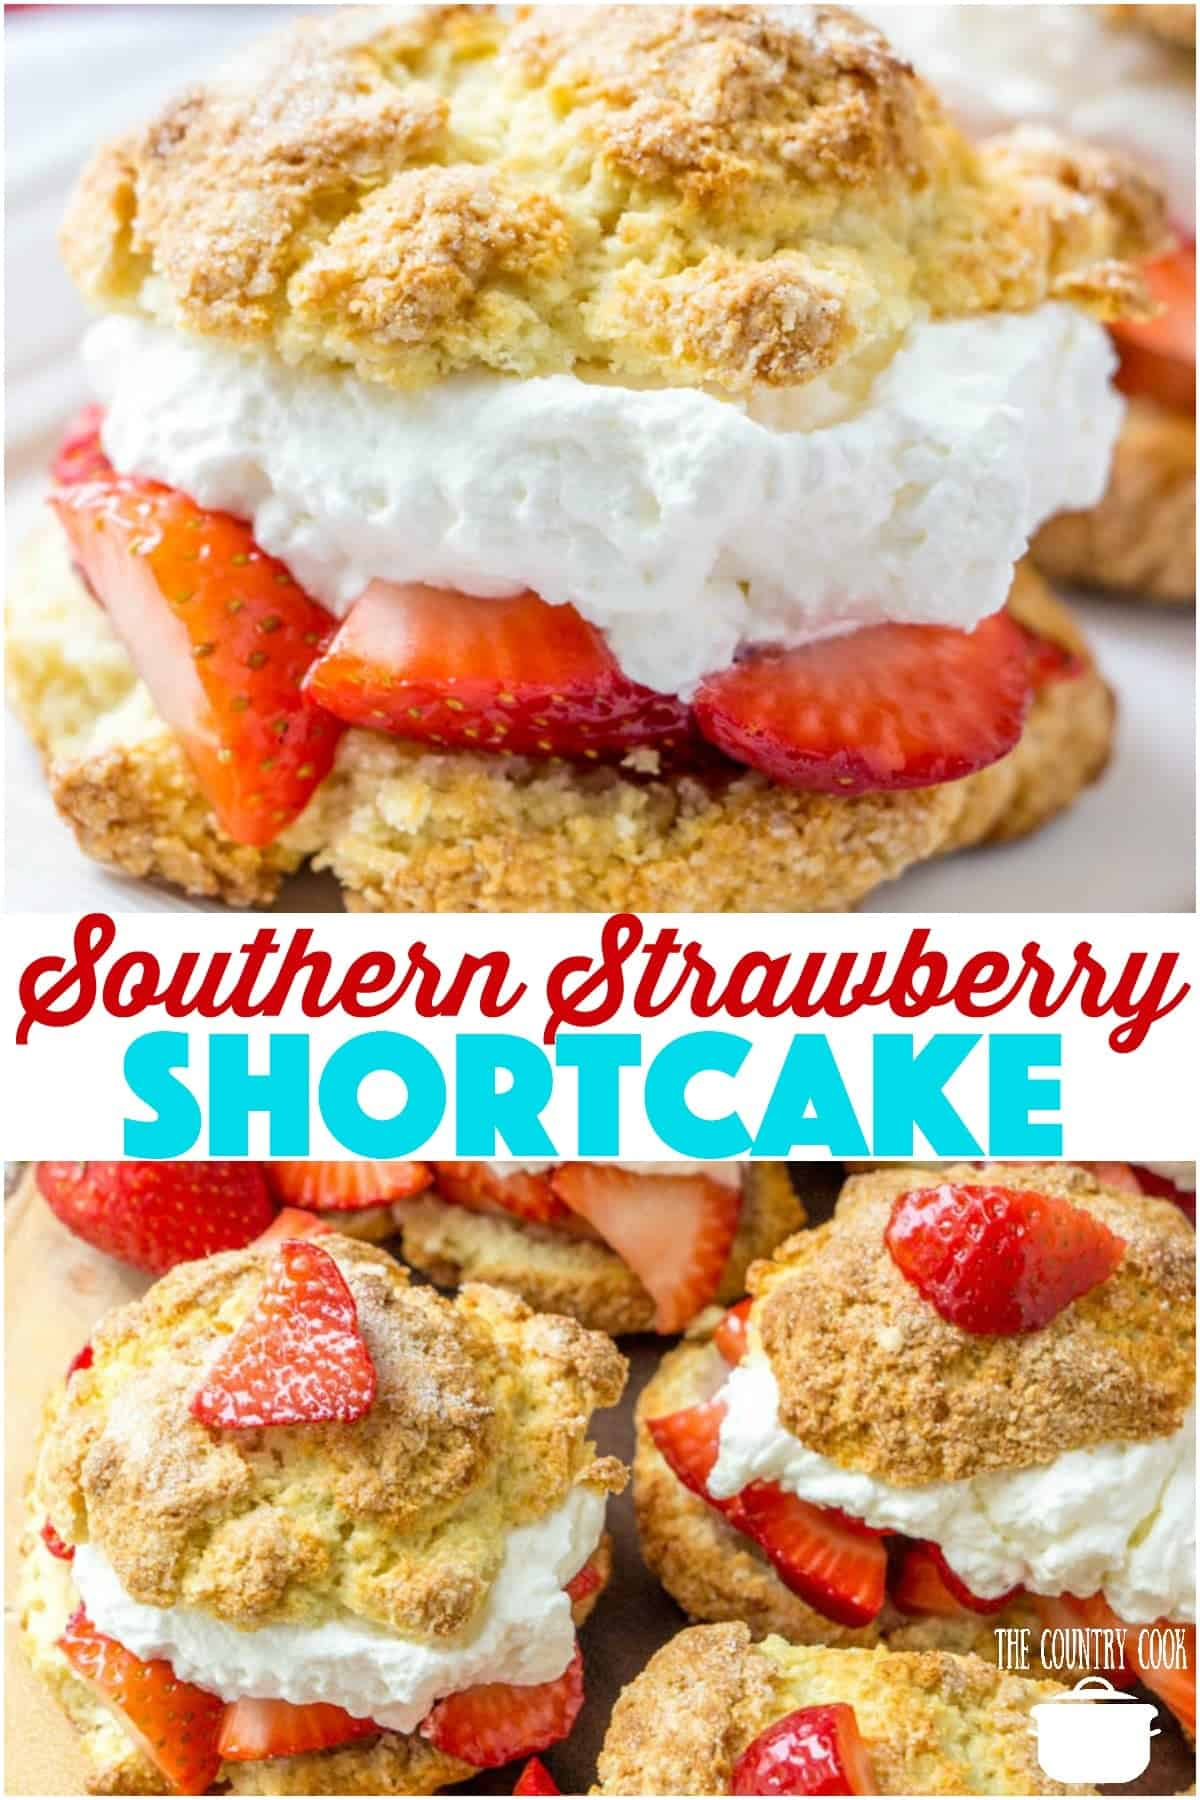 This recipe for Southern Strawberry Shortcakes is a classic homemade sweet shortcake topped with sweetened strawberries and whipped cream.